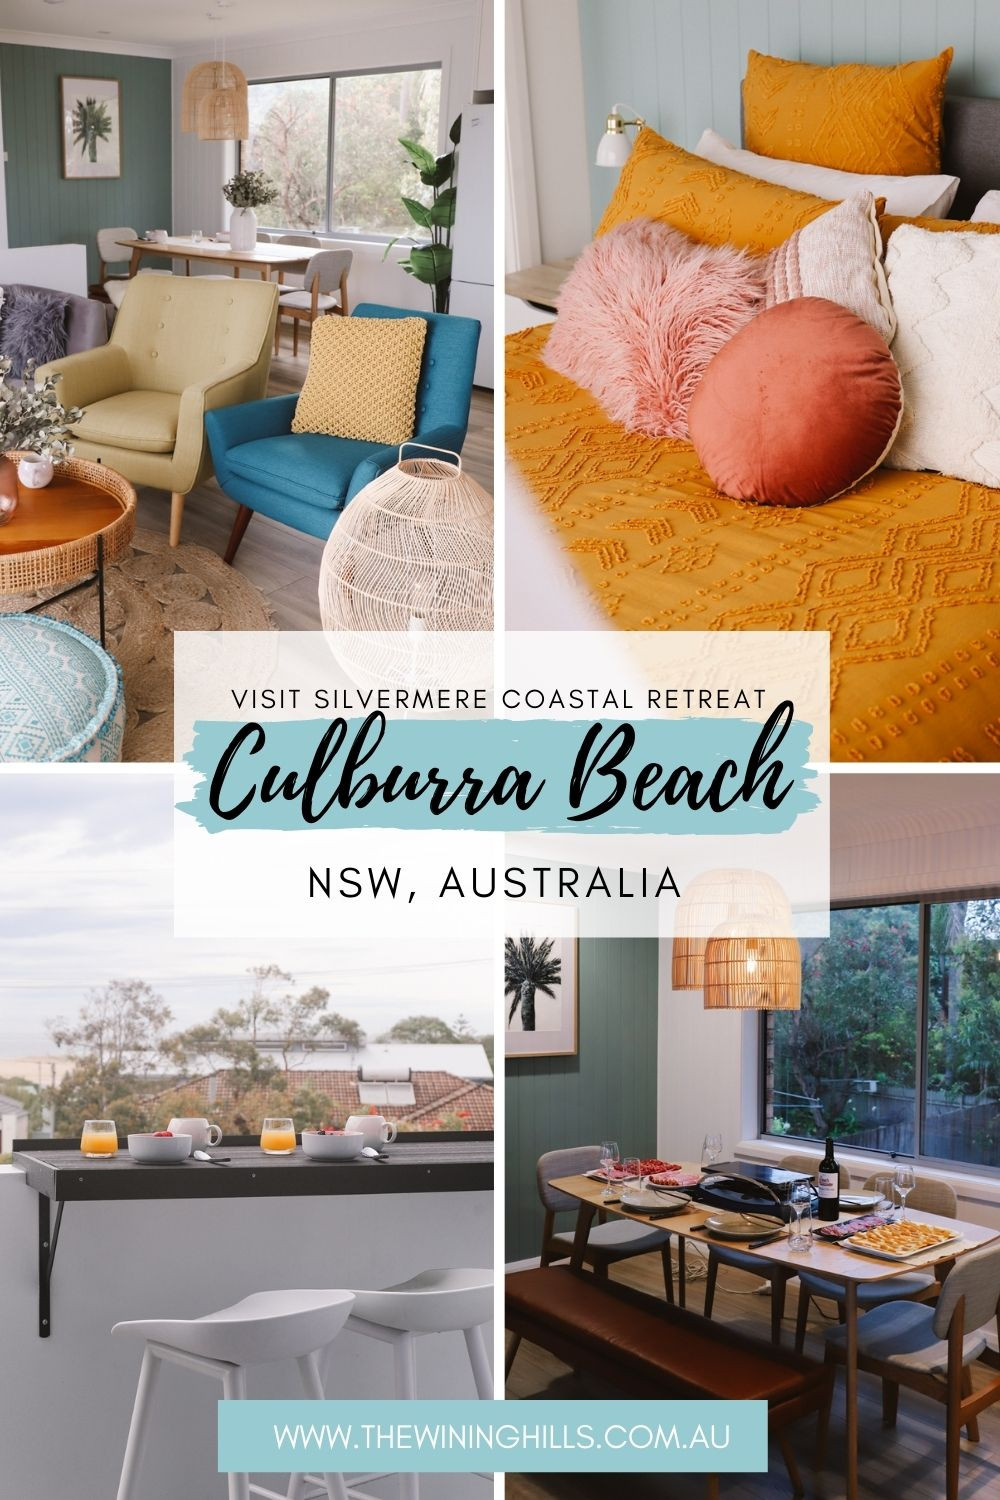 Silvermere Coastal Retreat- A 2.5 Hour drive south of Sydney on Culburra Beach! Check out this adorable Beach House!